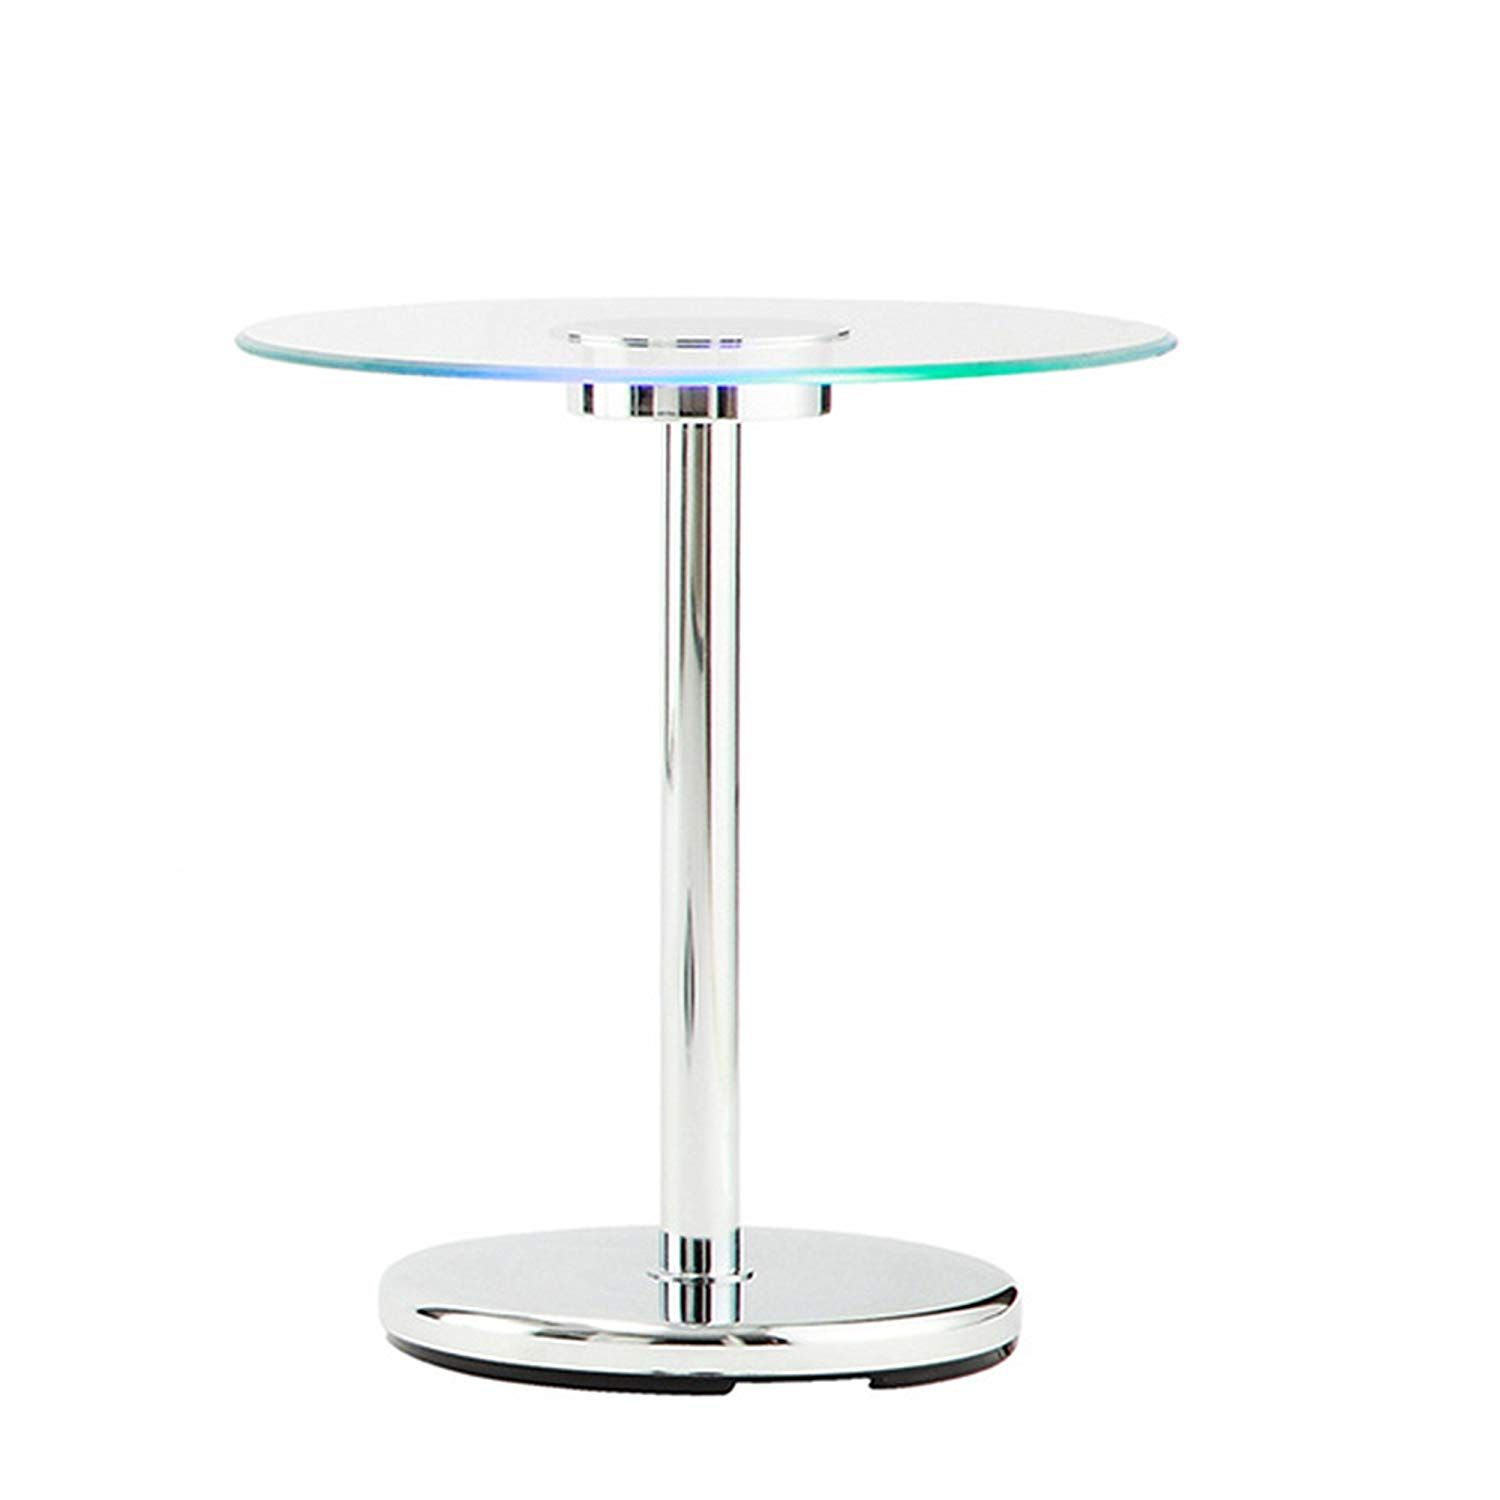 modhaus living modern style led accent tempered glass round top table shaped counter height end chrome metal frame room decor beach furniture hairpin nightstand small lamps chaise